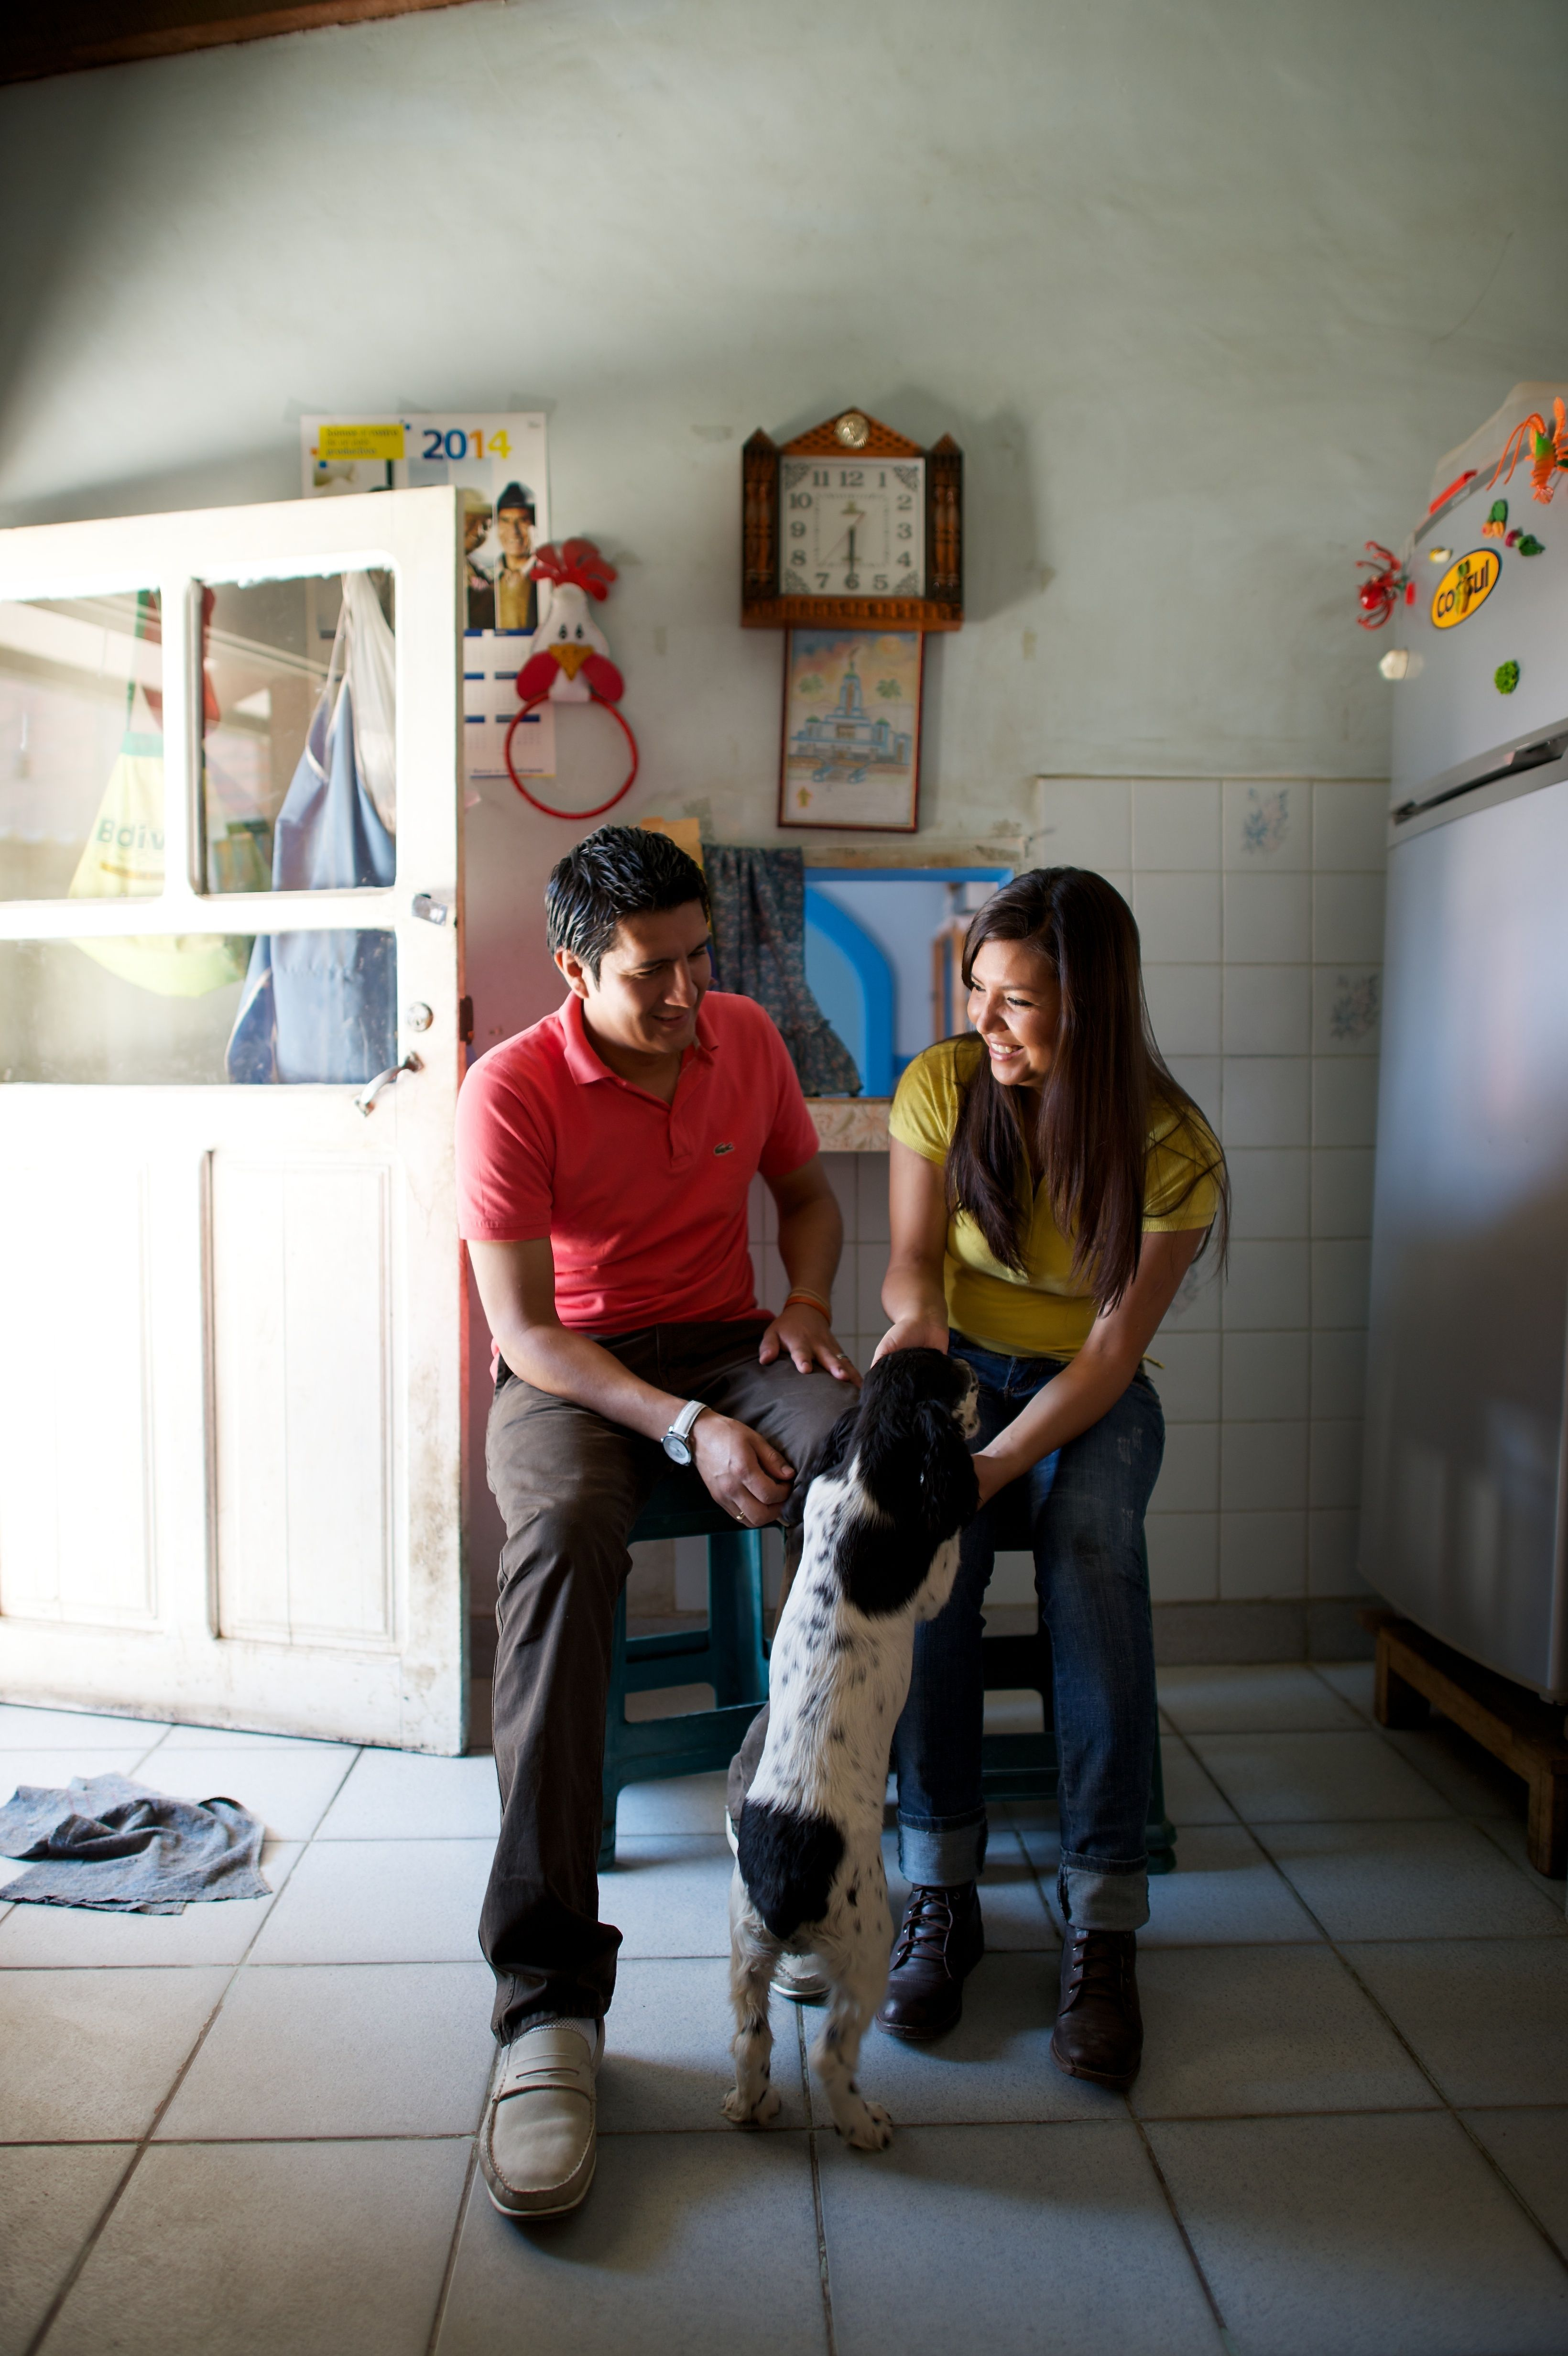 A young couple sitting on stools inside a kitchen and playing with a dog.